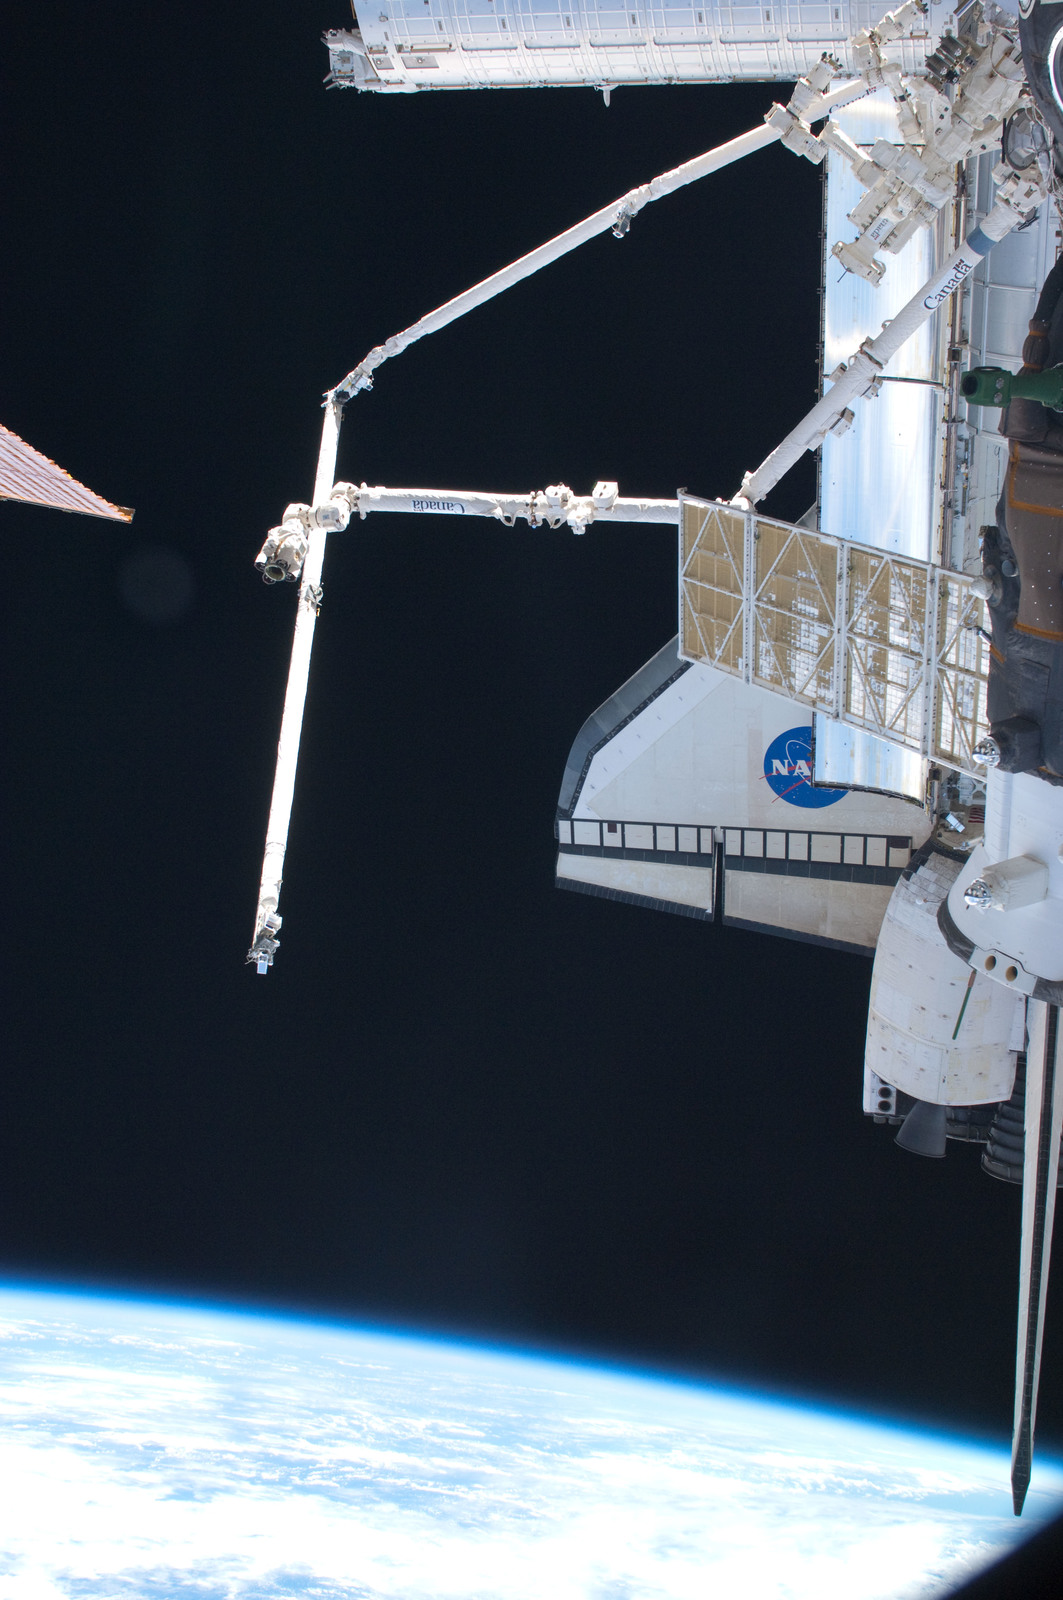 S126E024851 - STS-126 - View of Docked Soyuz, Endeavour, MSS and SRMS/OBSS